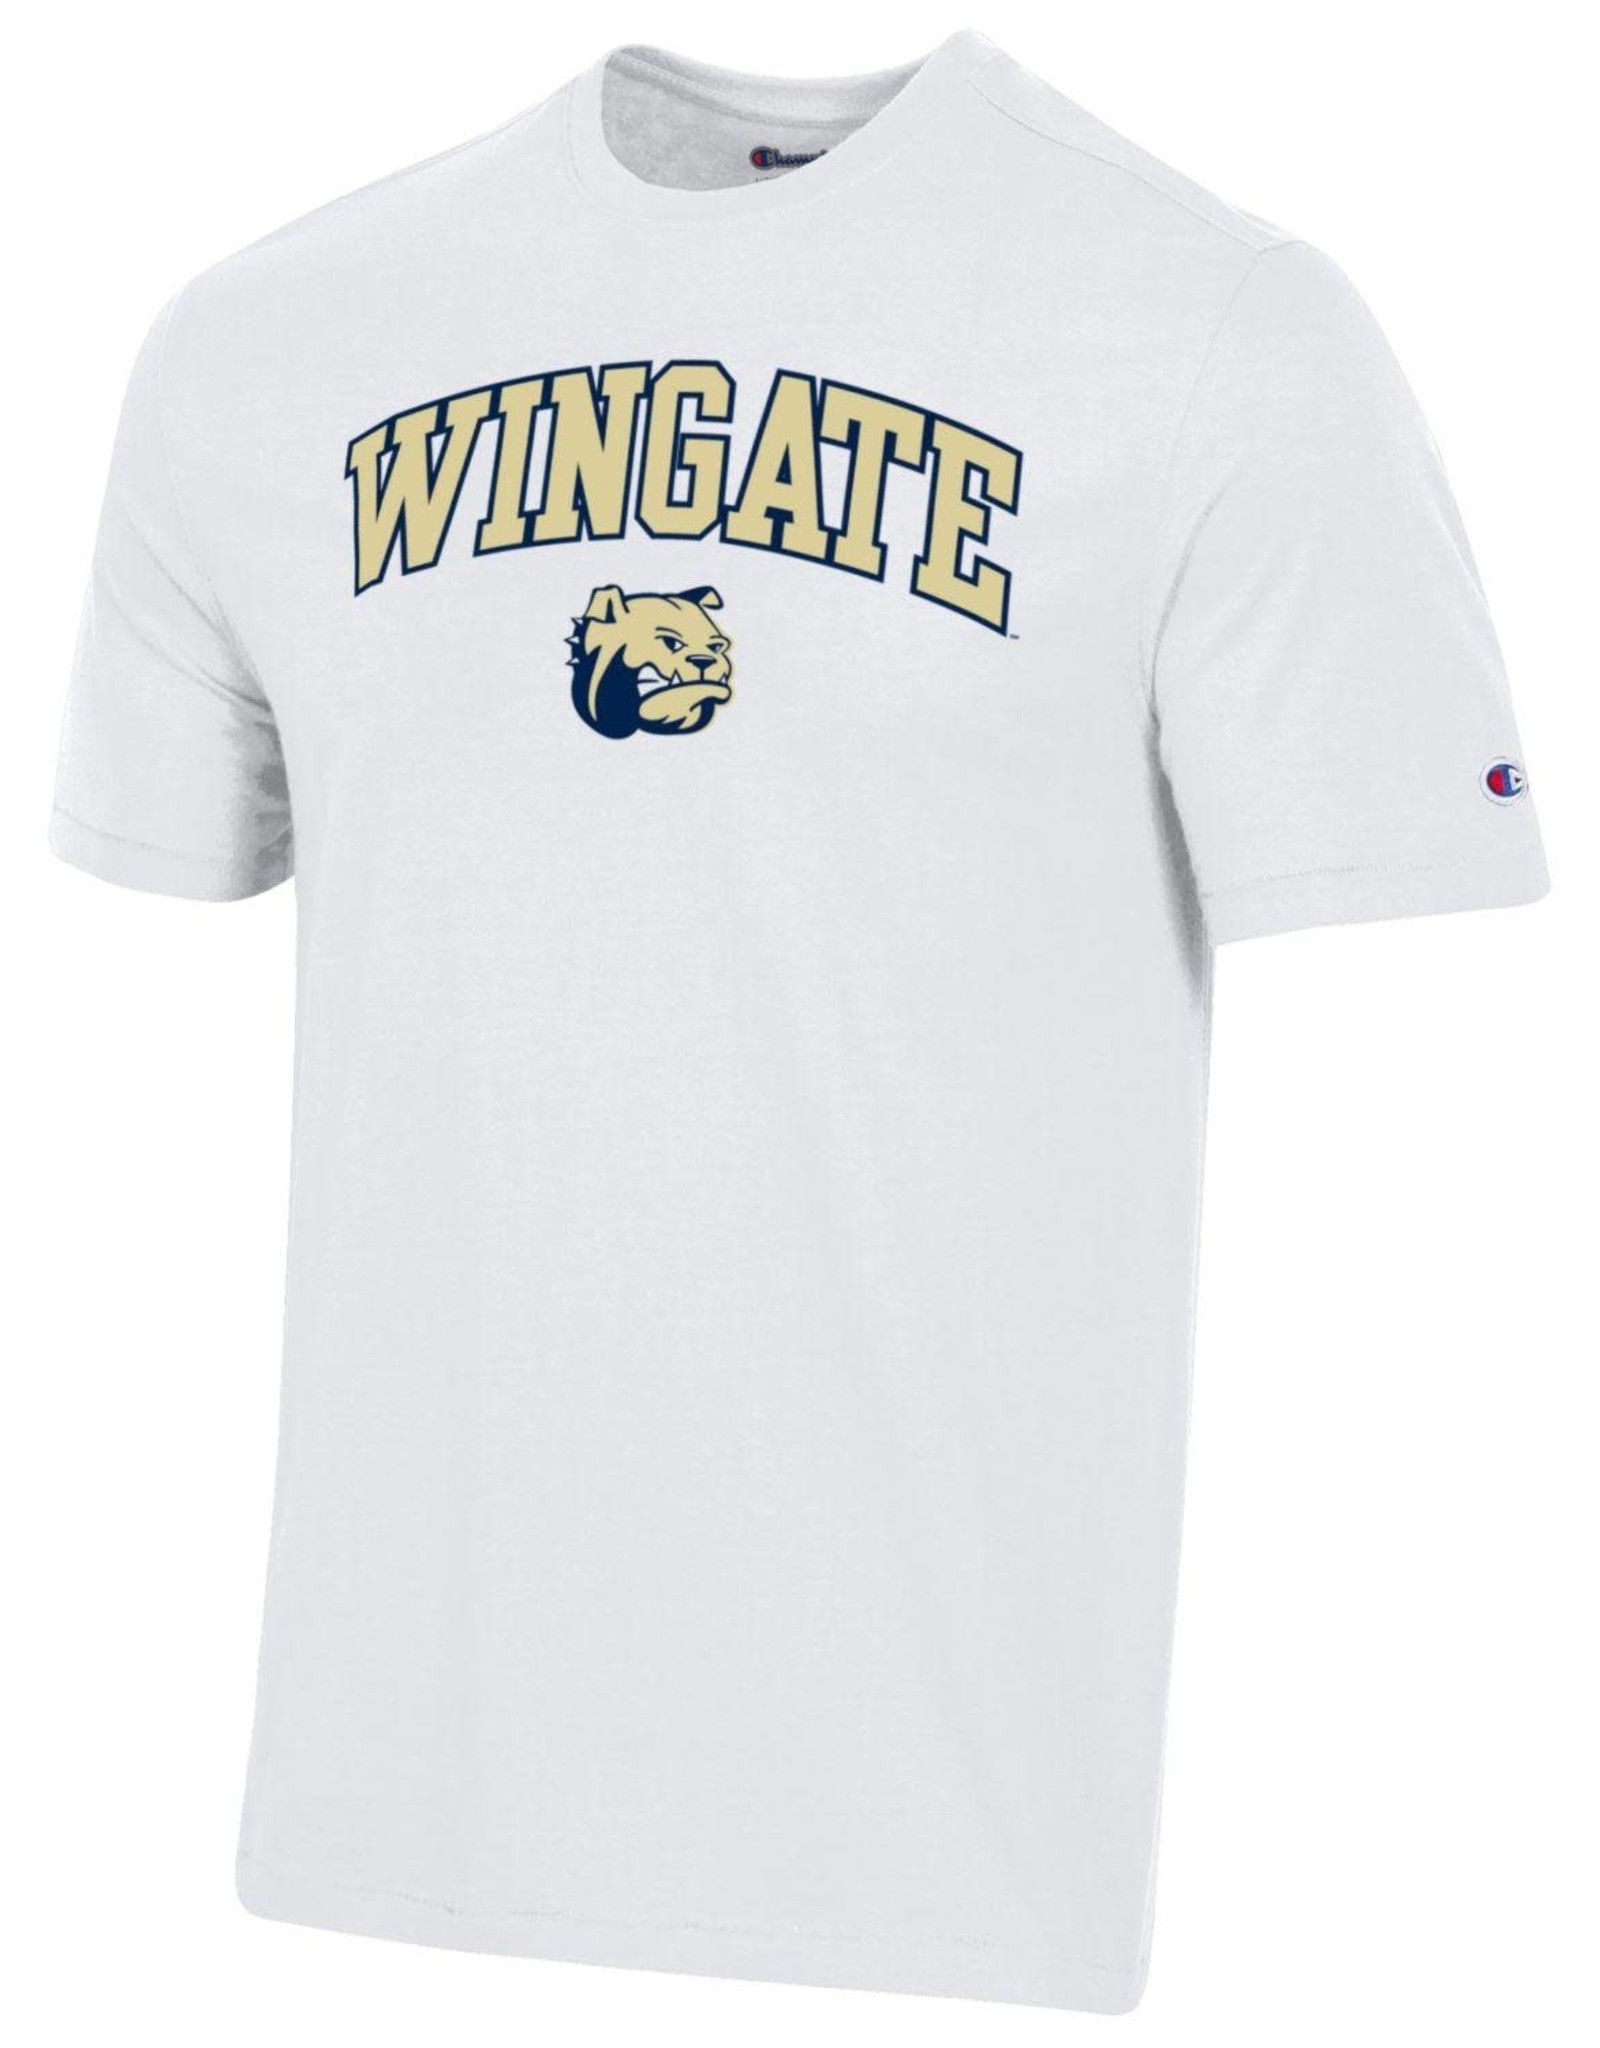 Champion White Super Fan Wingate Dog Head SS Tee